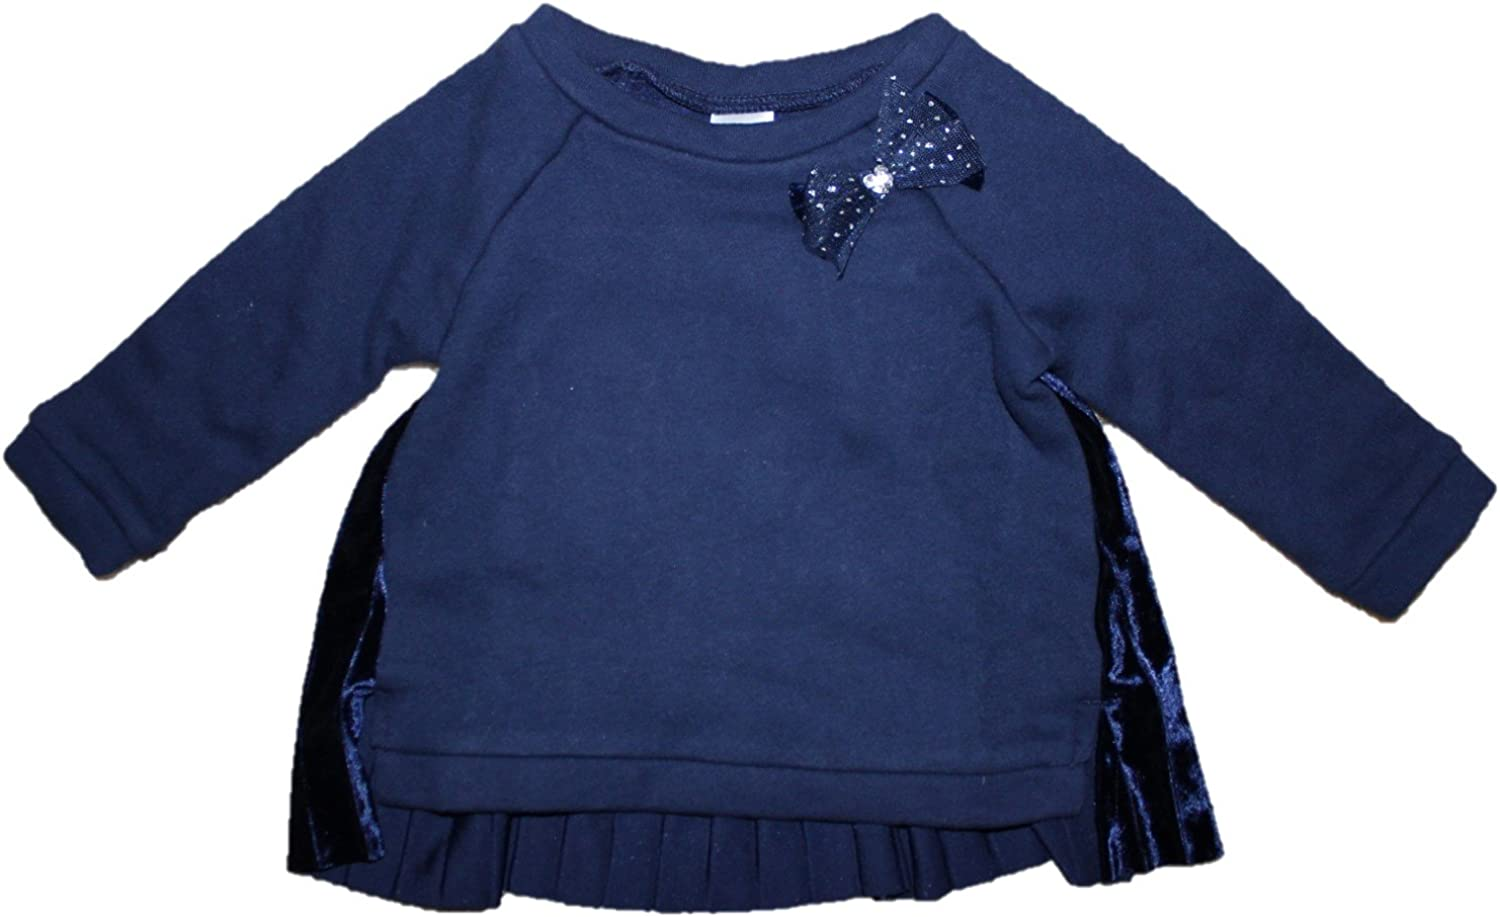 9 Months Carters Baby Girls Navy Pullover